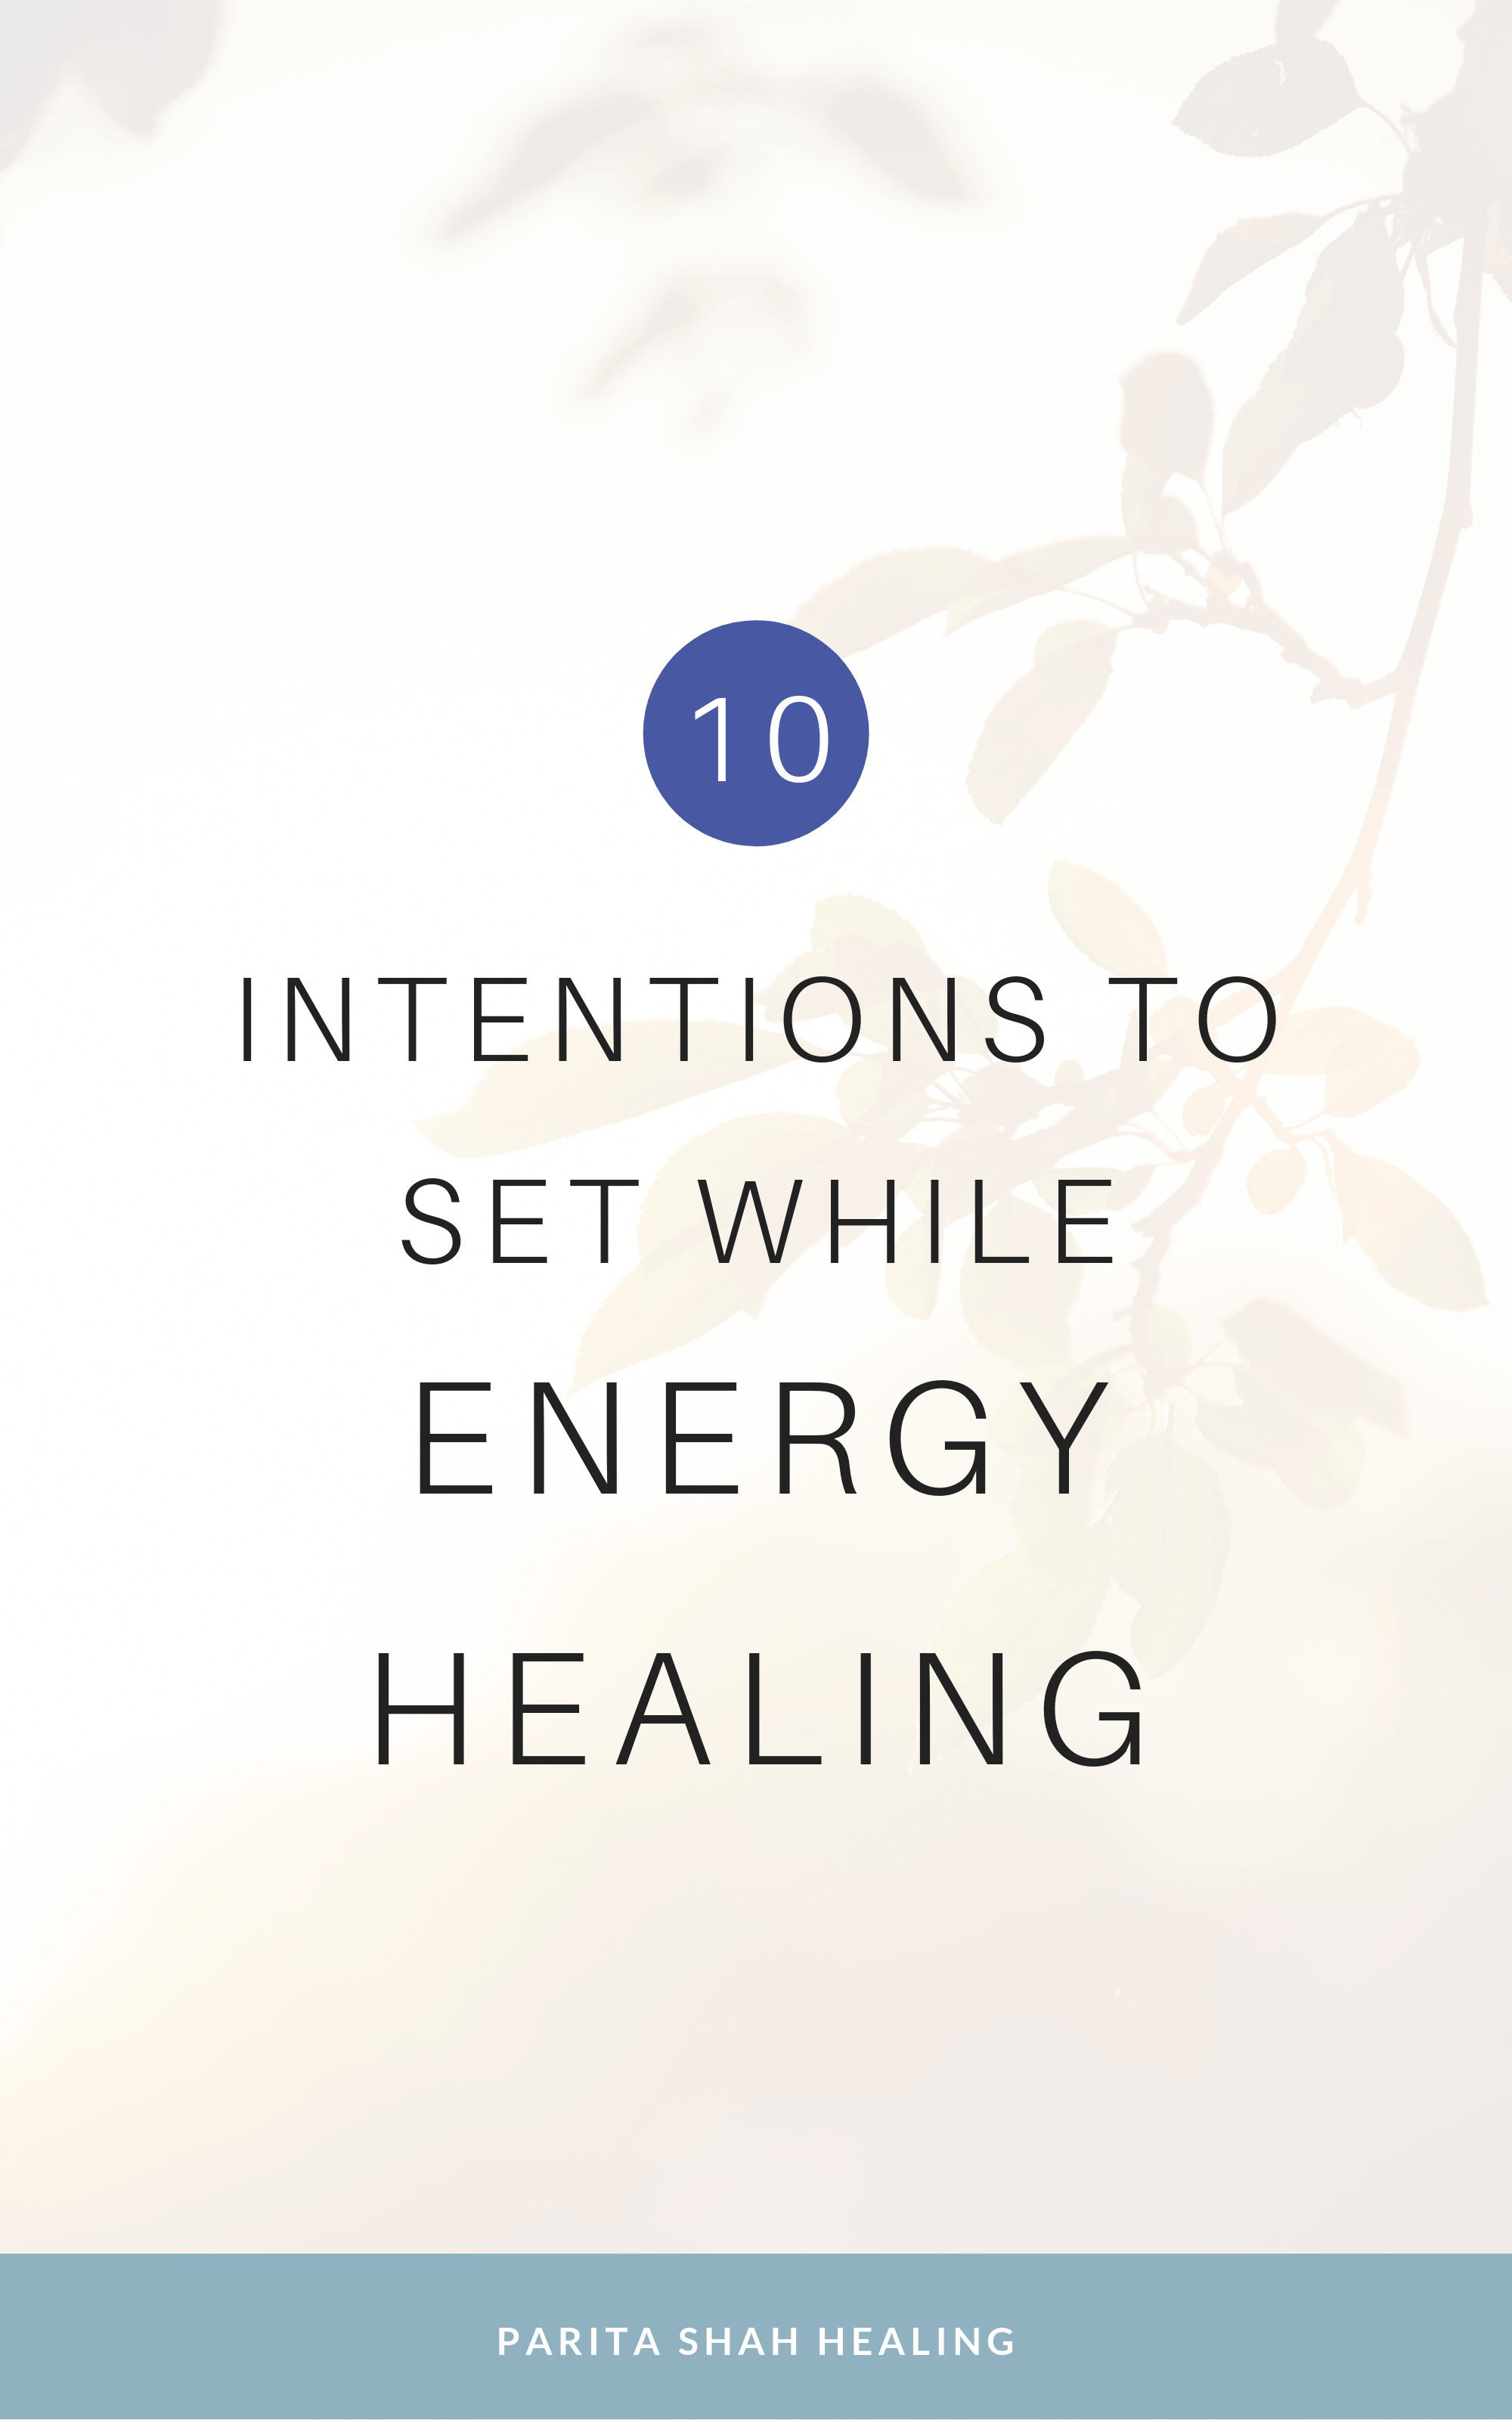 10 Intentions to Set while Energy Healing